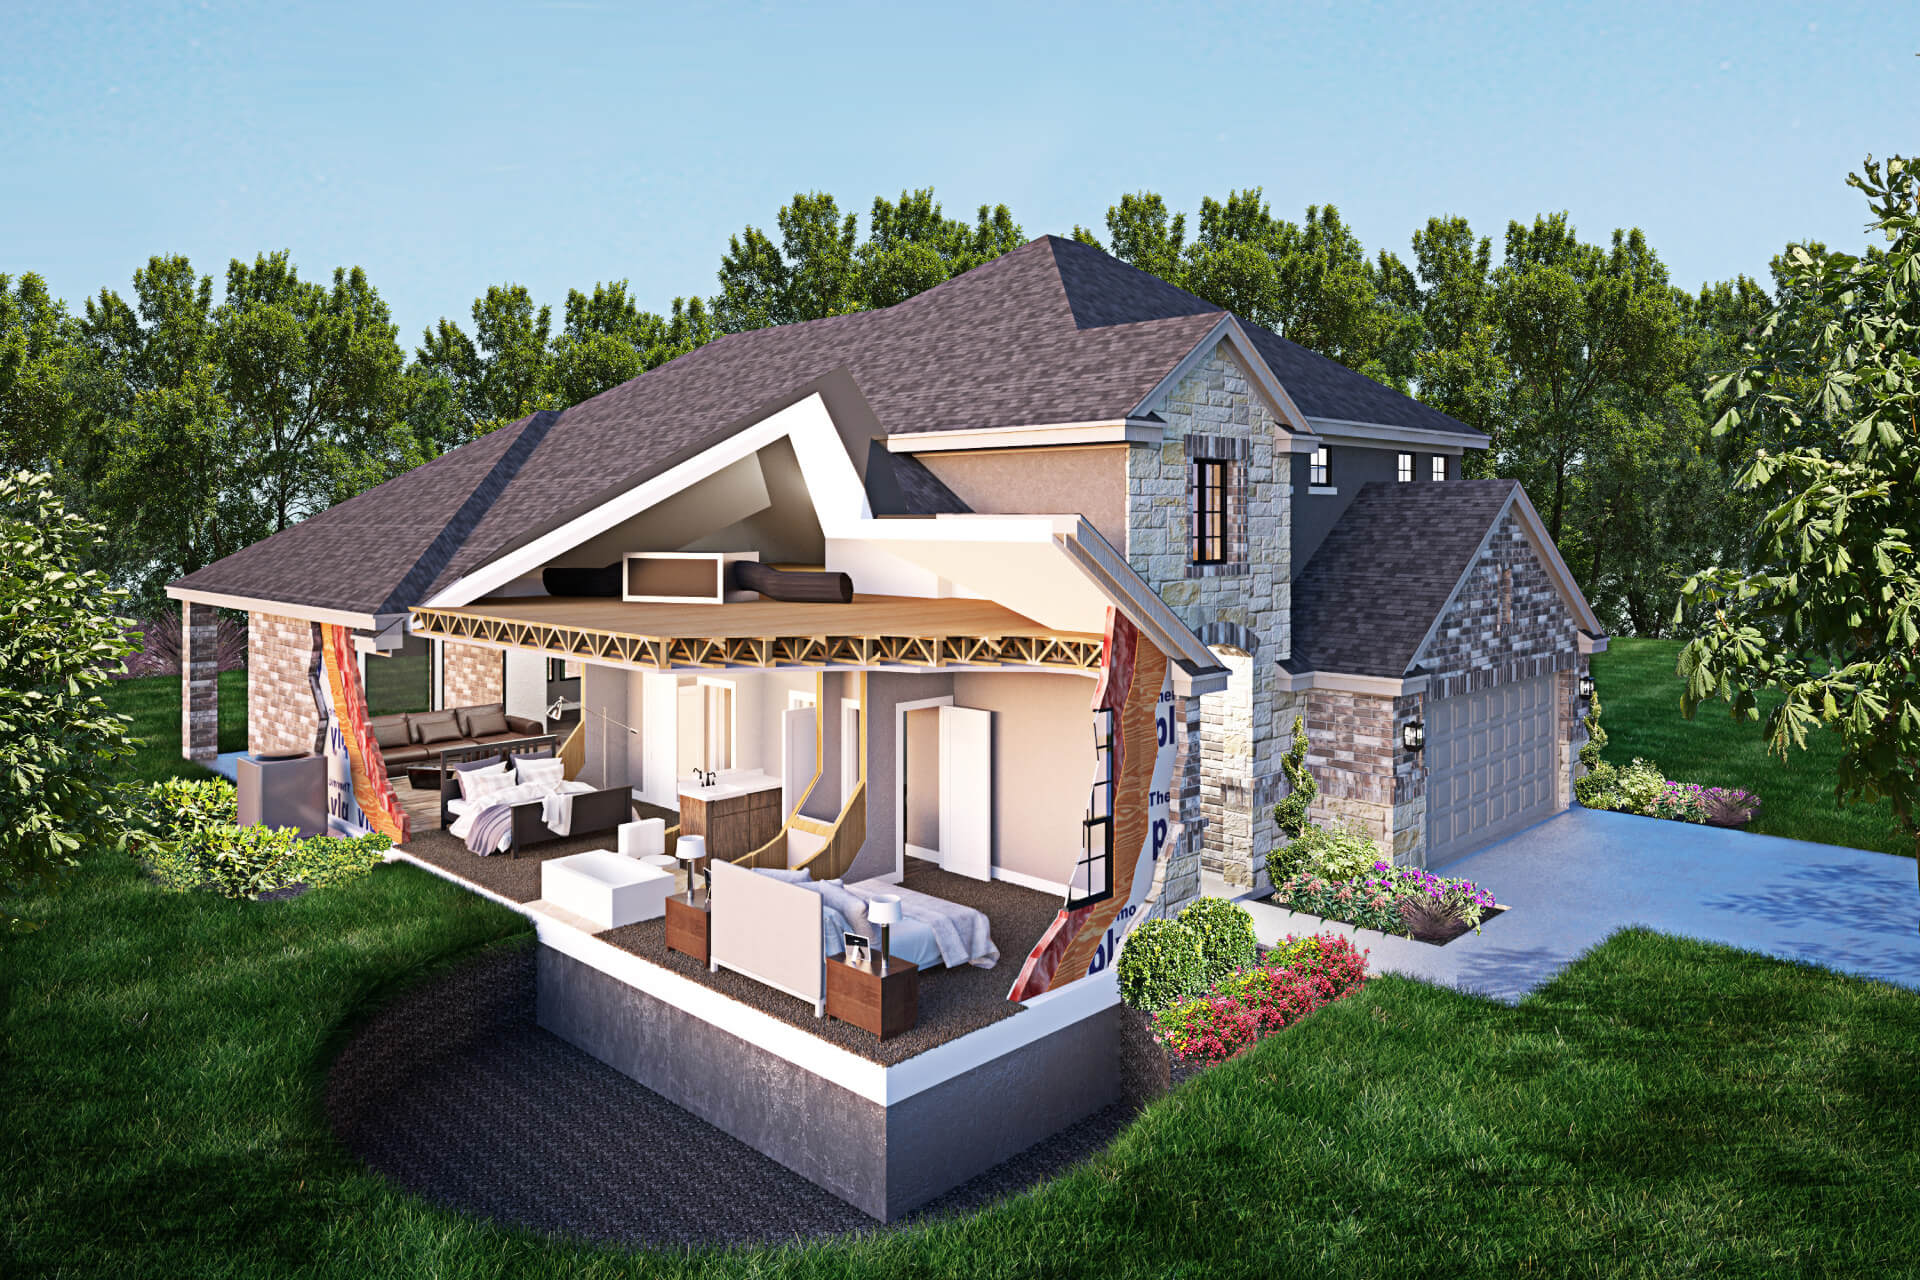 RNL Homes is a RESNET EnergySmart Builder